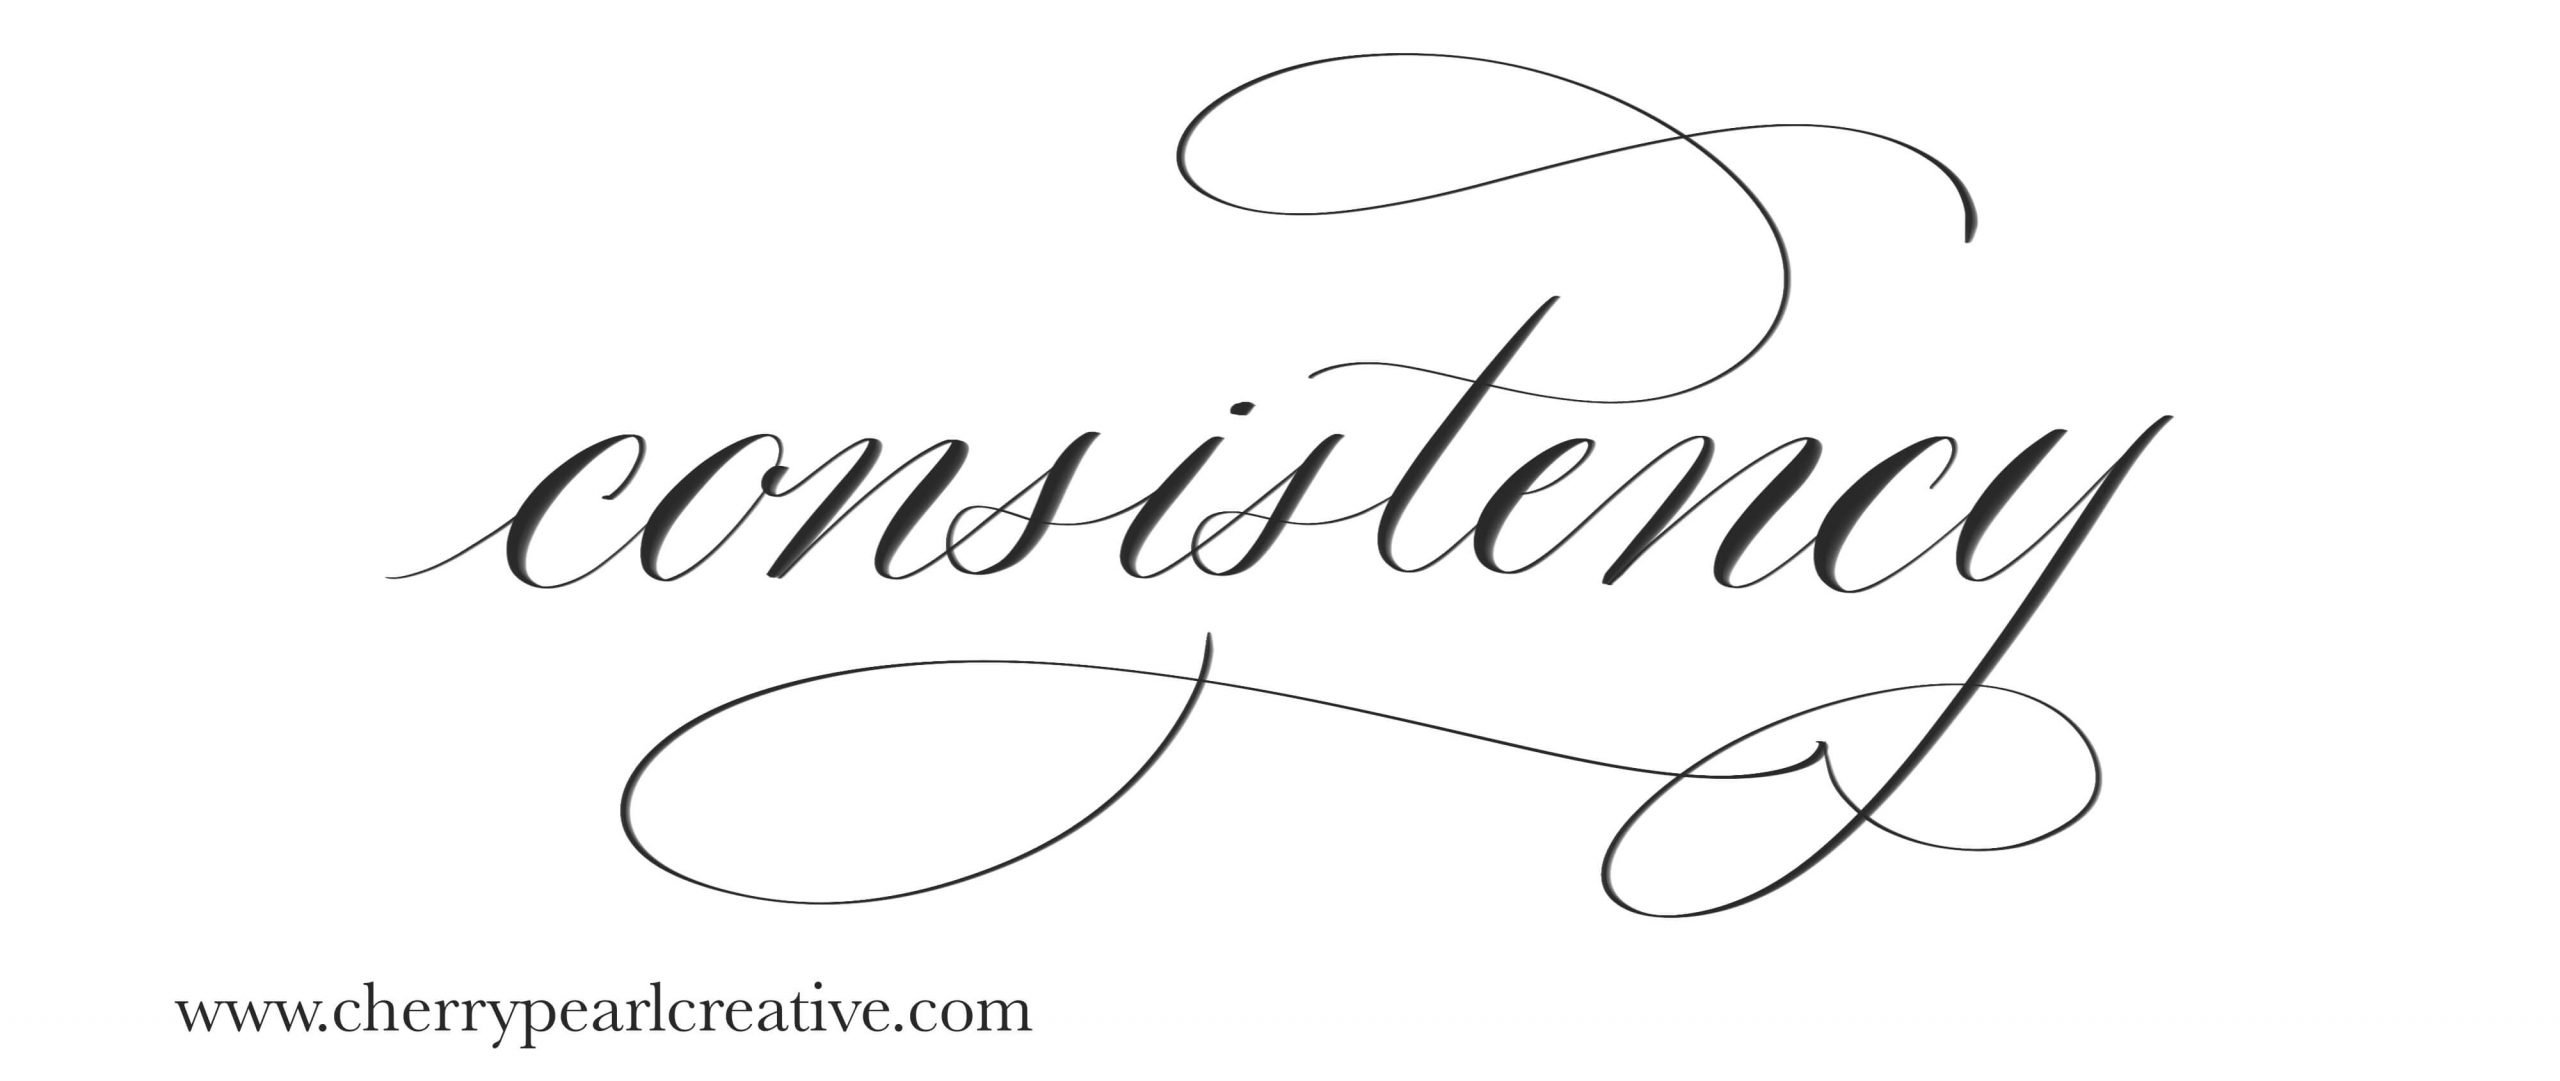 Increase the consistency in your calligraphy.